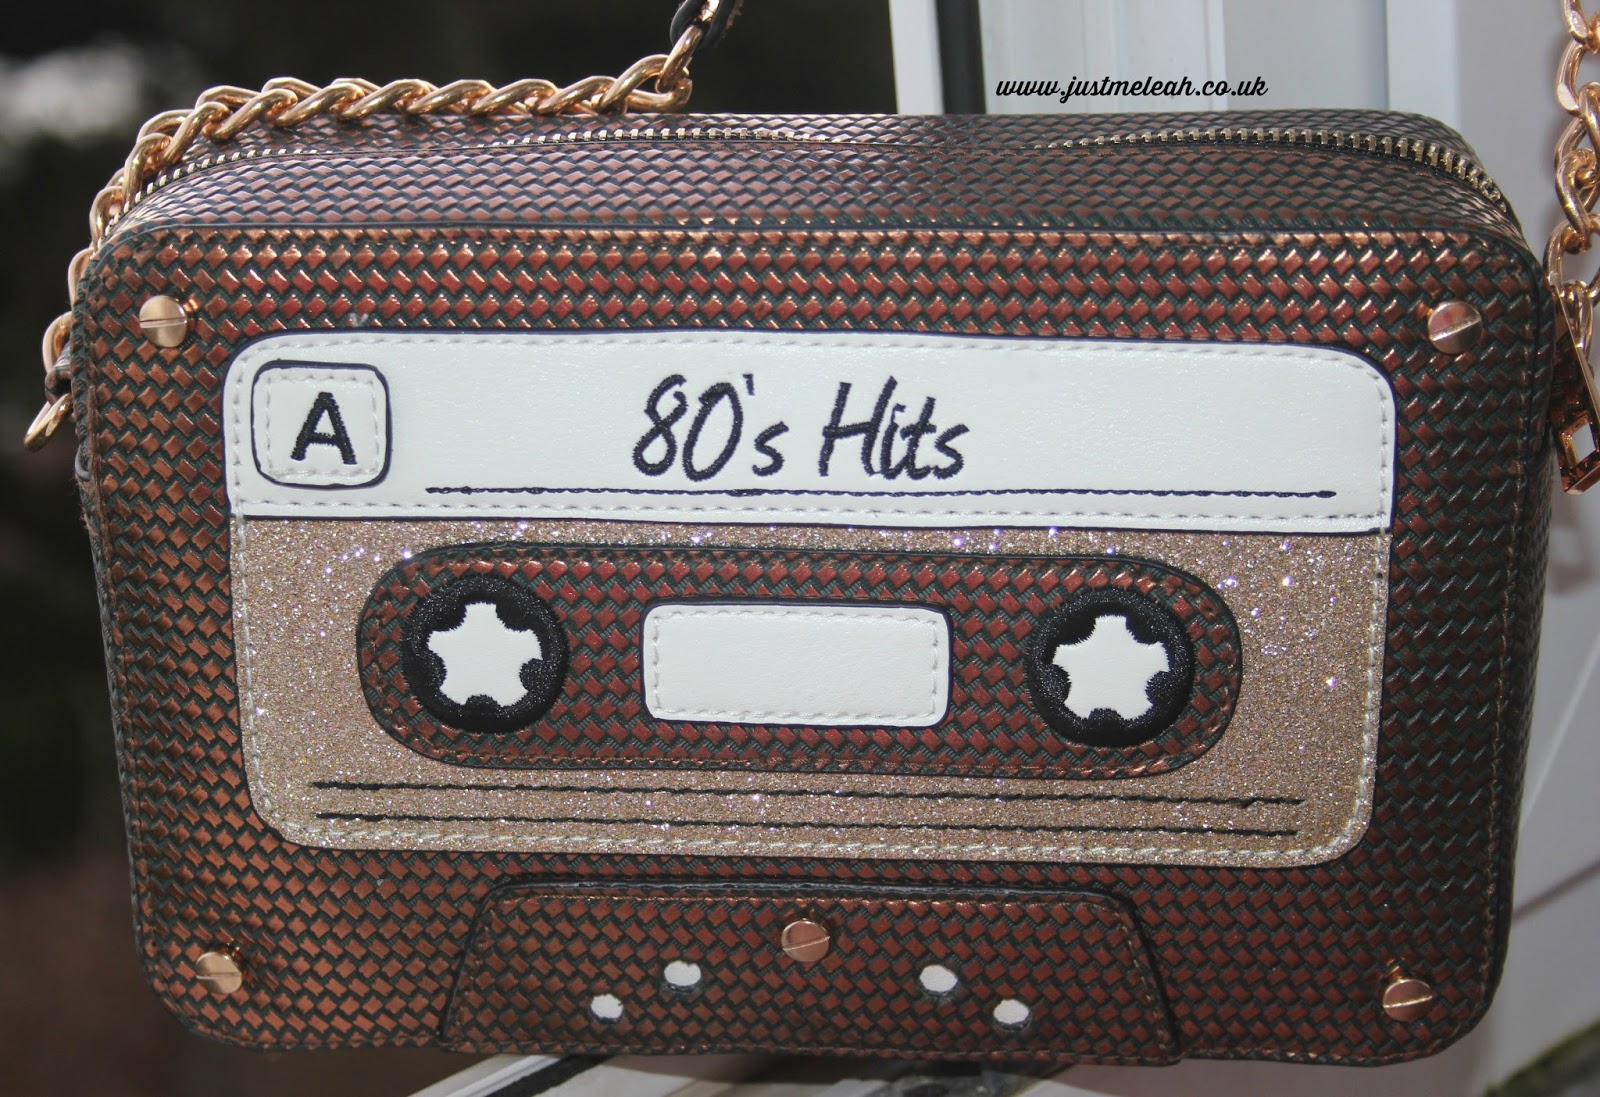 ACCESSORIZE 80S HITS HANDBAG REVIEW